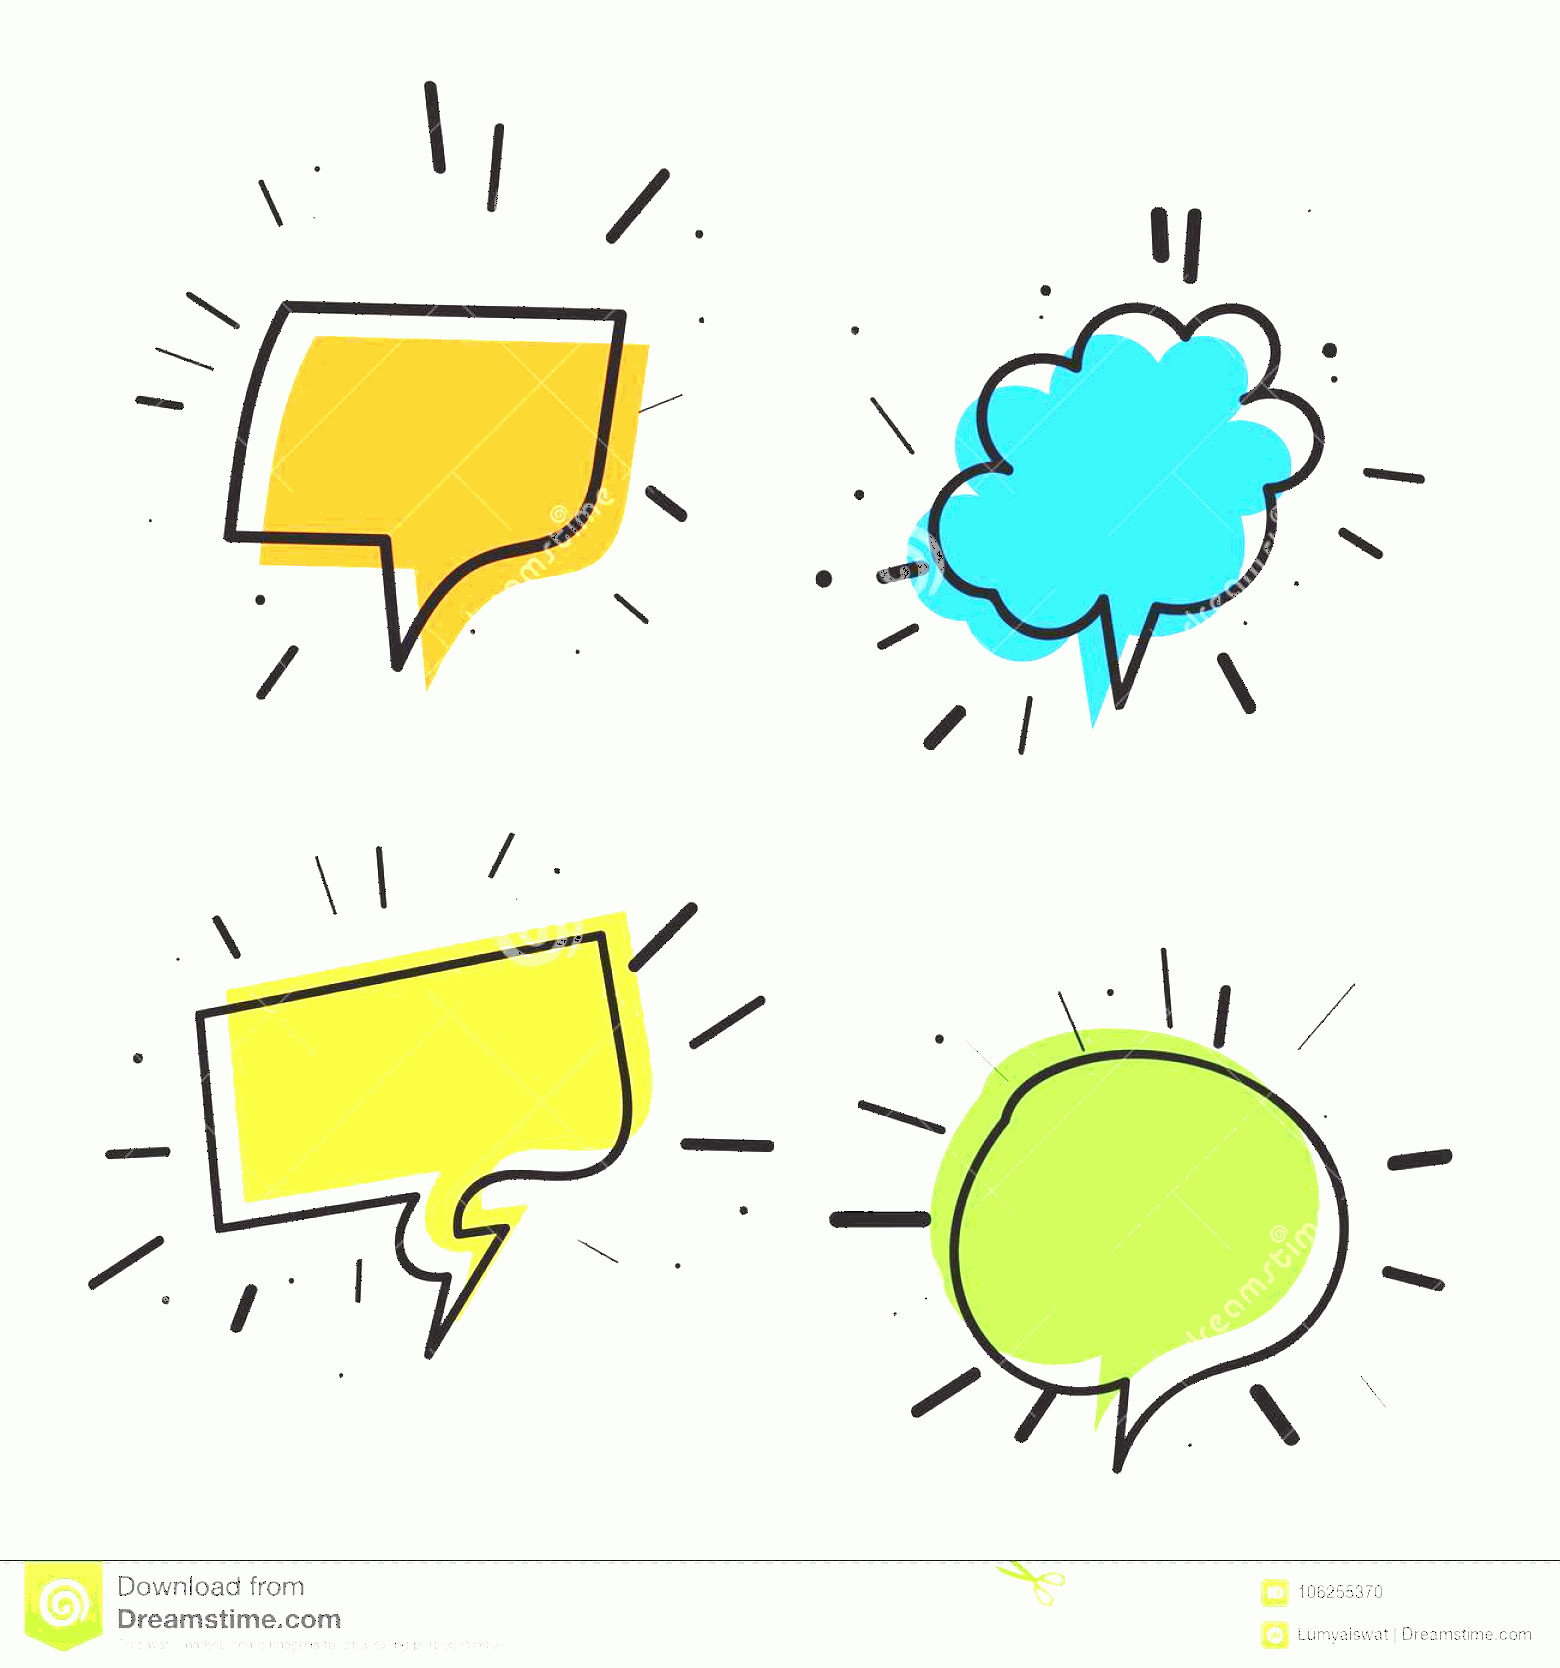 Thought Bubble Vector Sketch: Color Set Hand Drawn Speech Bubble Thought Bubbles Empty Sketch Vector Illustration Image